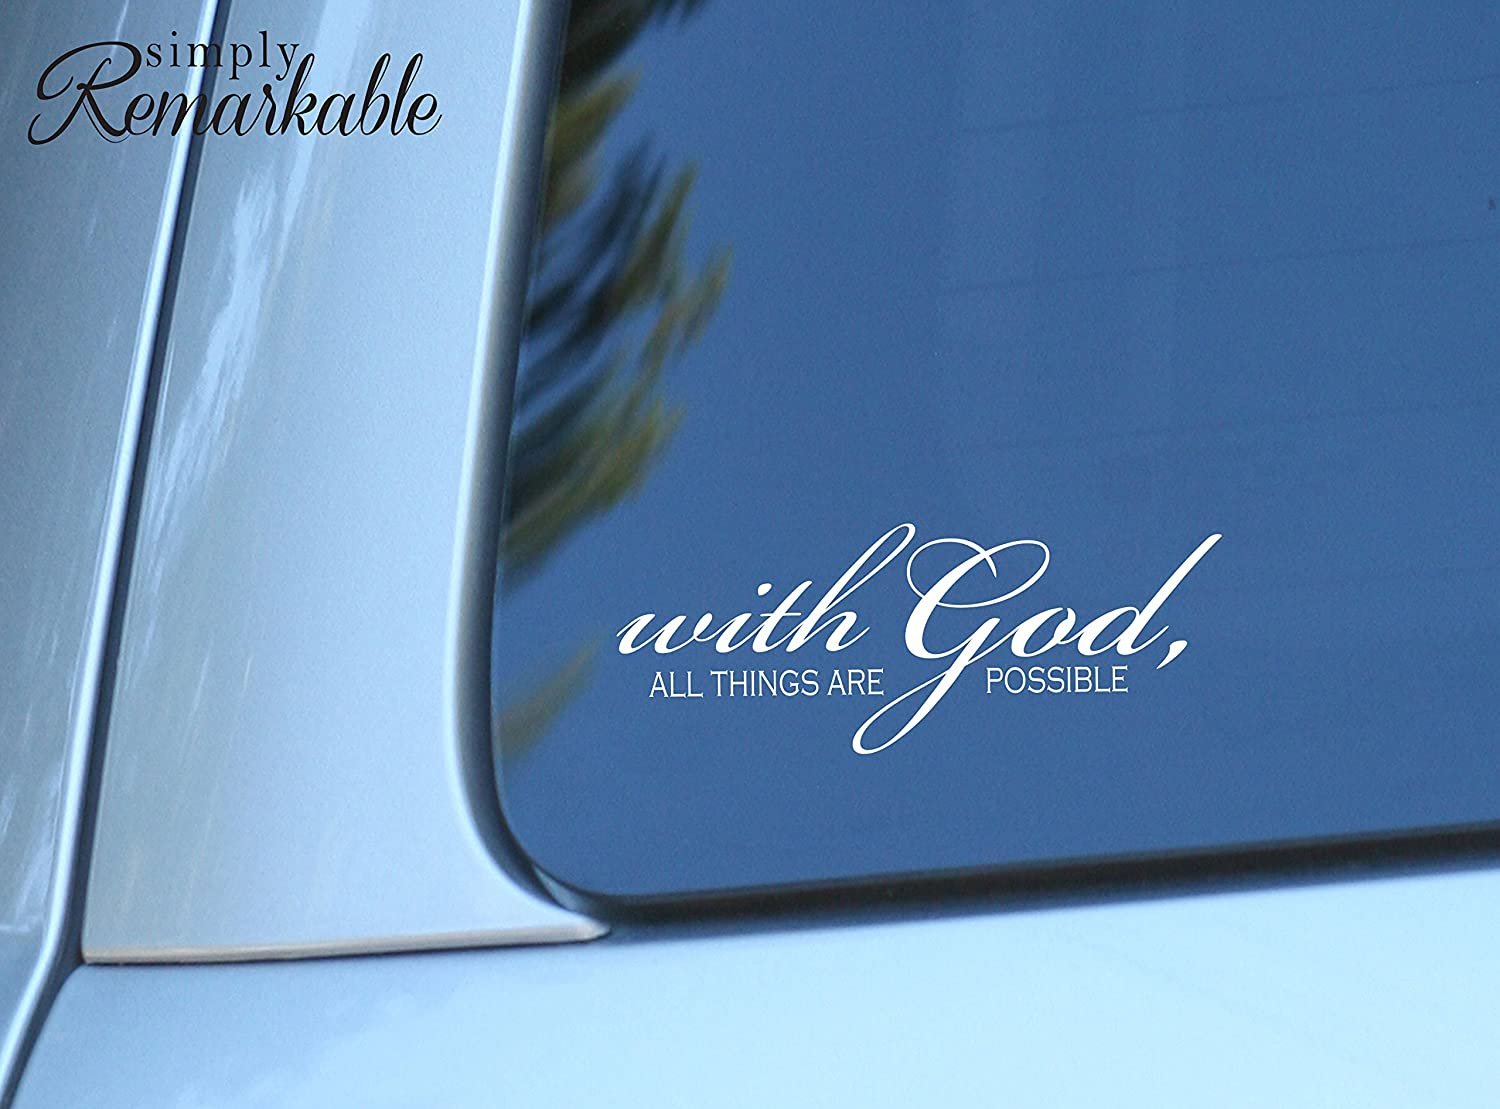 Simply Remarkable with God All Things are Possible Laptop Art. Religious Christian Decal for car, Computer or Wall. Wall Décor. USA Made Removable Vinyl Stickers and Gifts - 8 x 3 inches White